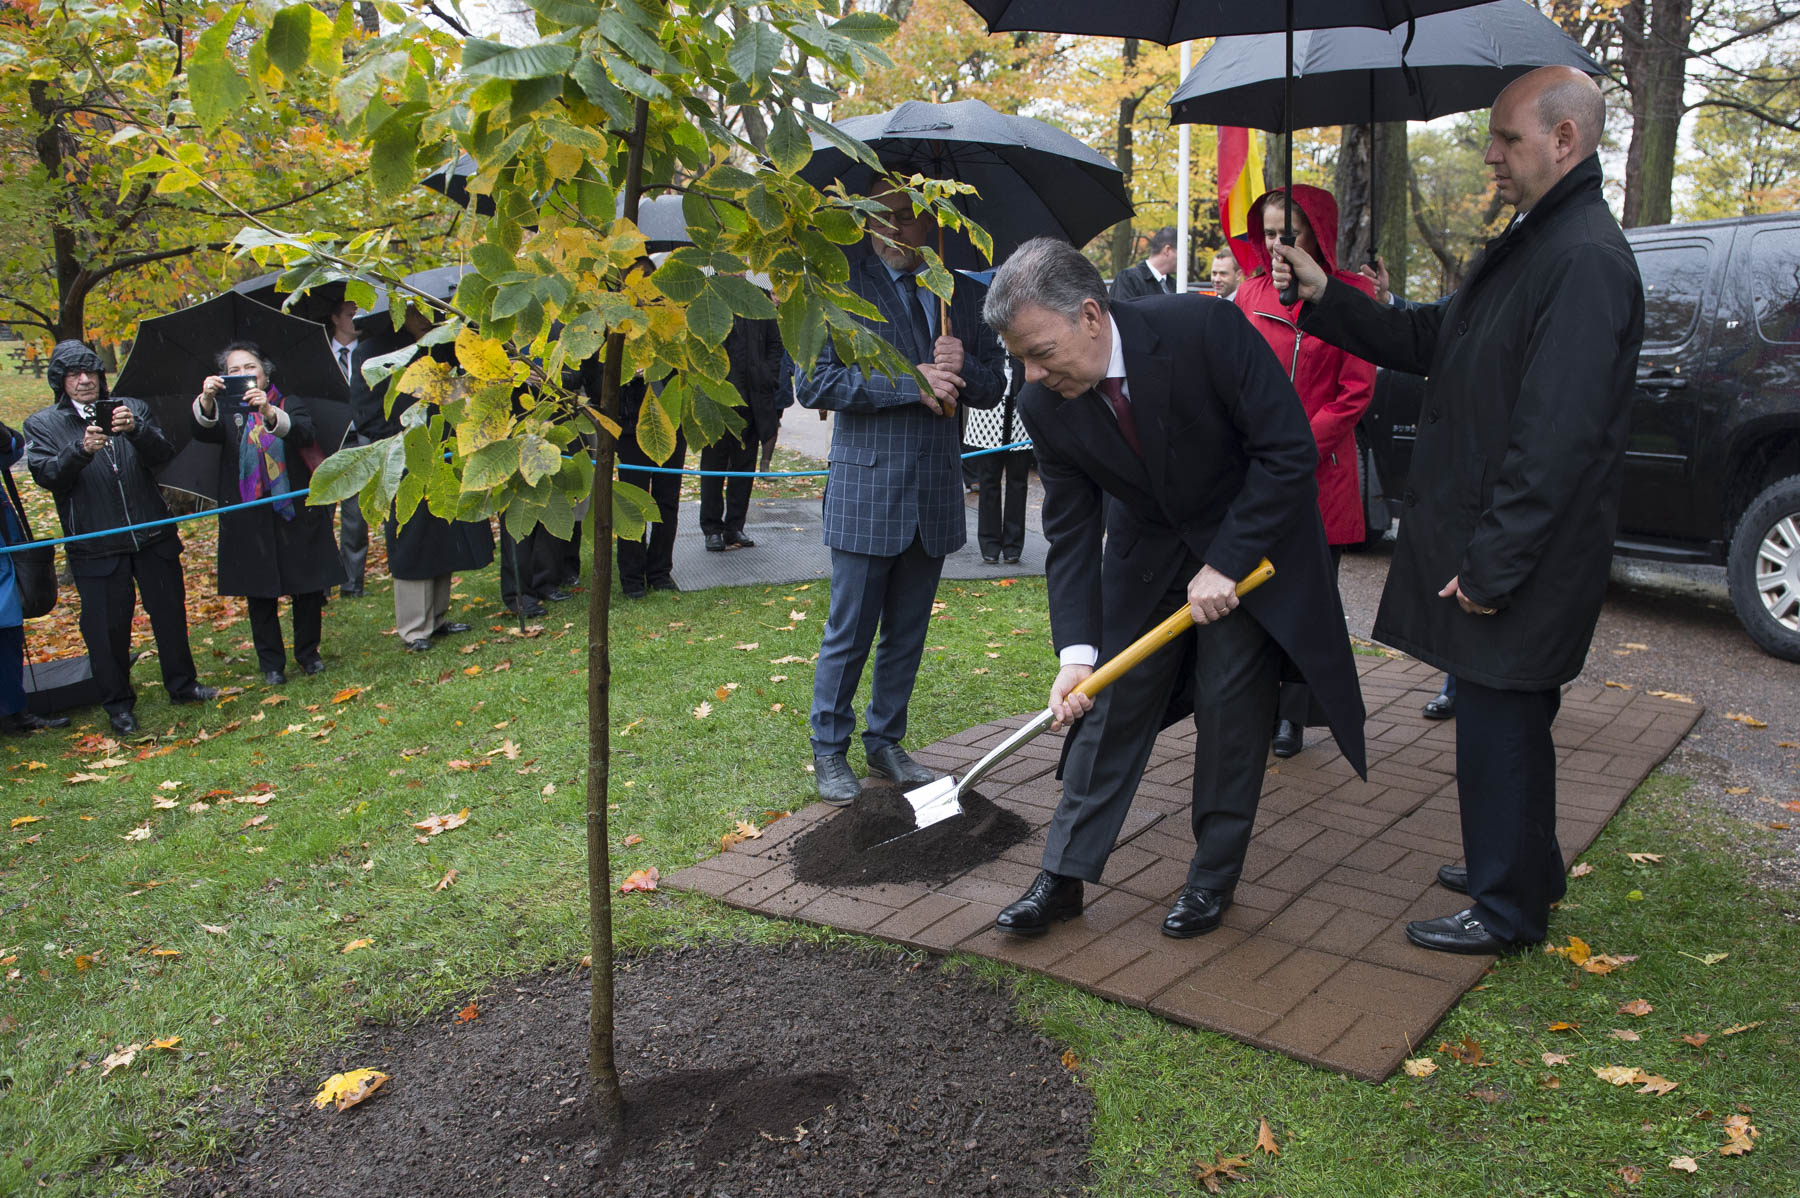 The President planted a bitternut hickory tree (Carya cordiformis) on the grounds of Rideau Hall to commemorate his State visit to Canada. The wood of the bitternut hickory is known for its durability and strength, which reflect our countries' important relationship.